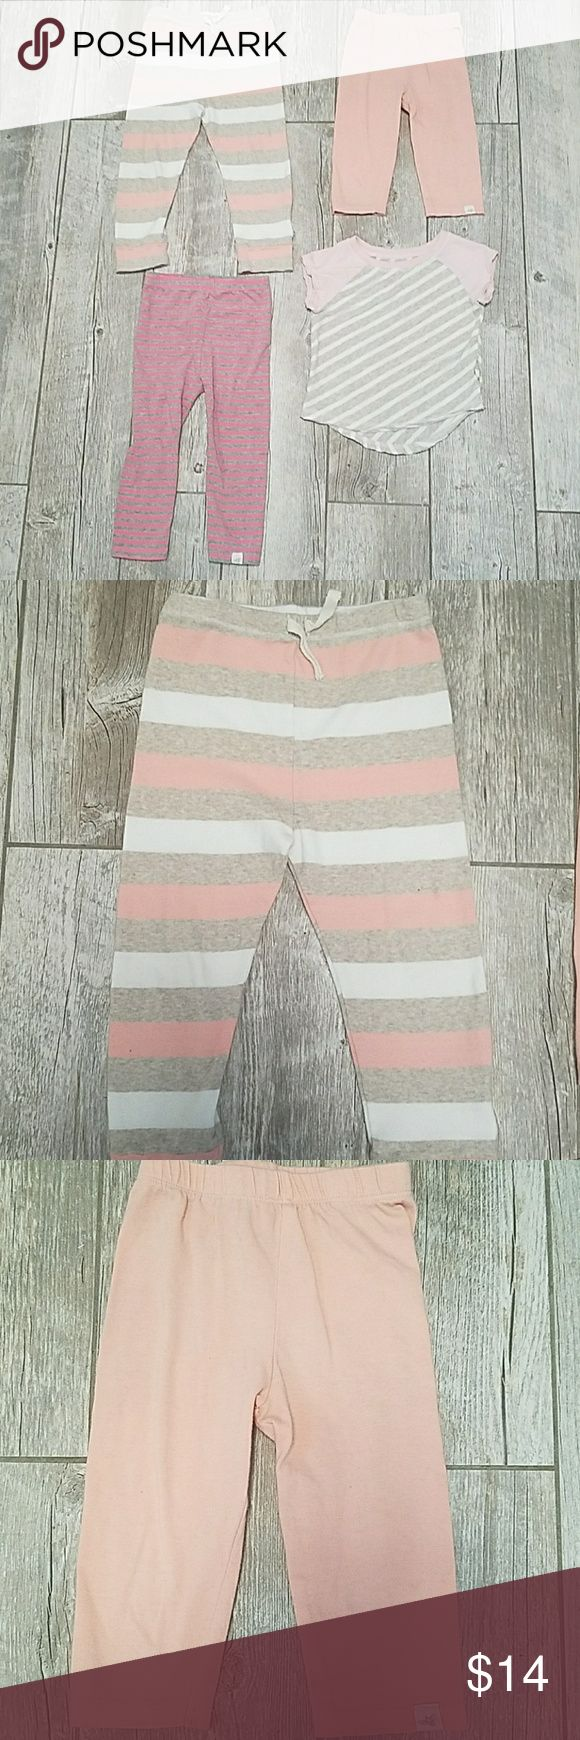 Toddler girl Burt's Bees bundle This bundle includes 2 pairs of striped pants, one pair of capris, and one striped tee. EUC from smoke free home Burt's Bees Baby Bottoms Leggings